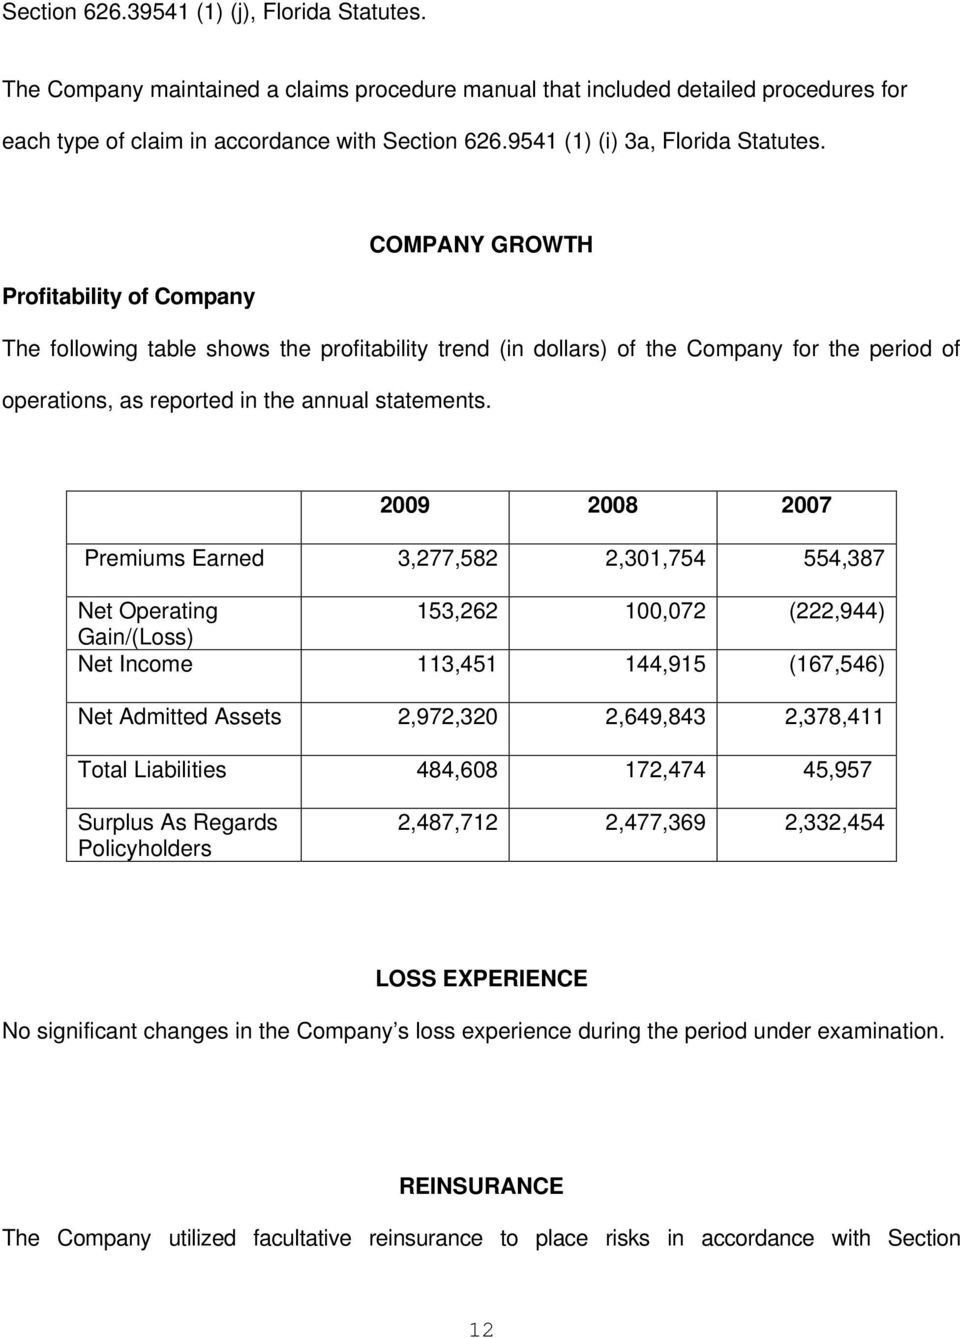 COMPANY GROWTH Profitability of Company The following table shows the profitability trend (in dollars) of the Company for the period of operations, as reported in the annual statements.